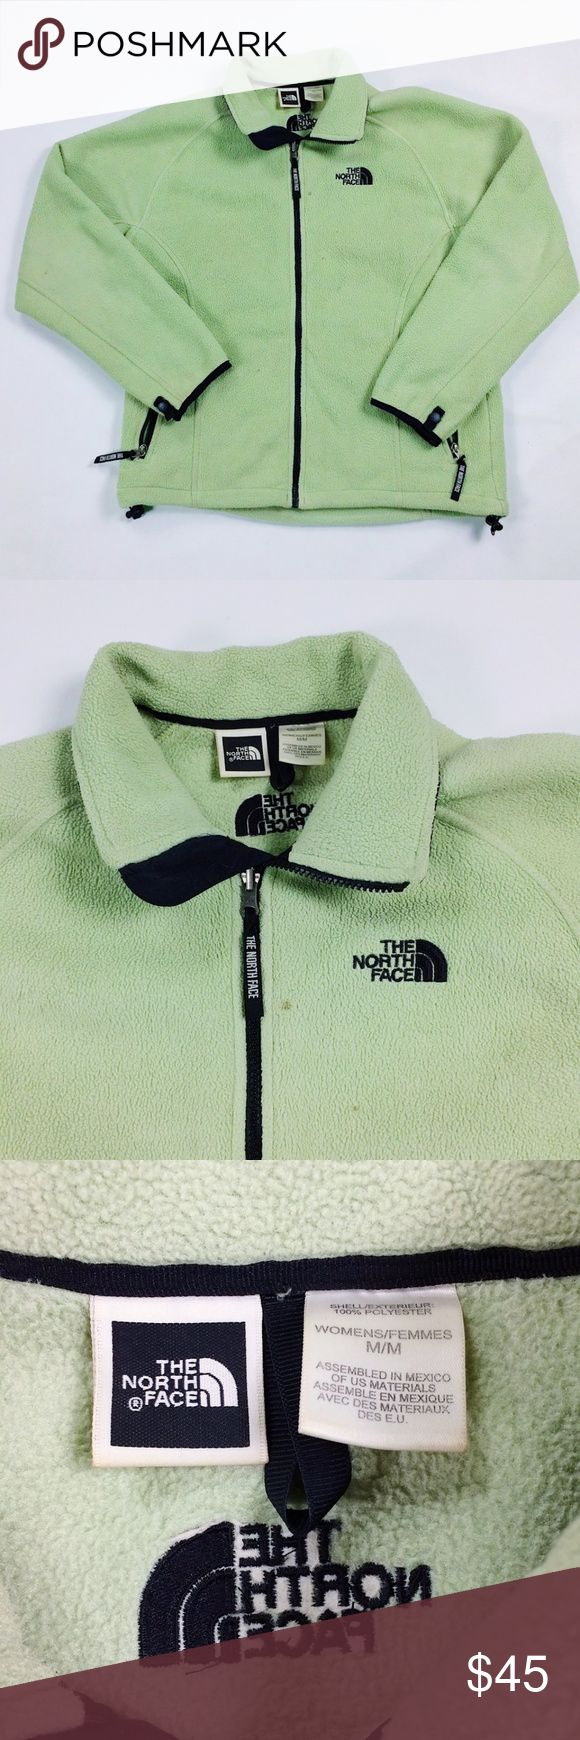 Medium The North Face Green Zip Up Fleece Jacket 90s vintage The North Face women's Medium zip up fleece. Excellent condition other than a few small stains that may come out, but nothing major. Still has plenty of wear left. The North Face Jackets & Coats